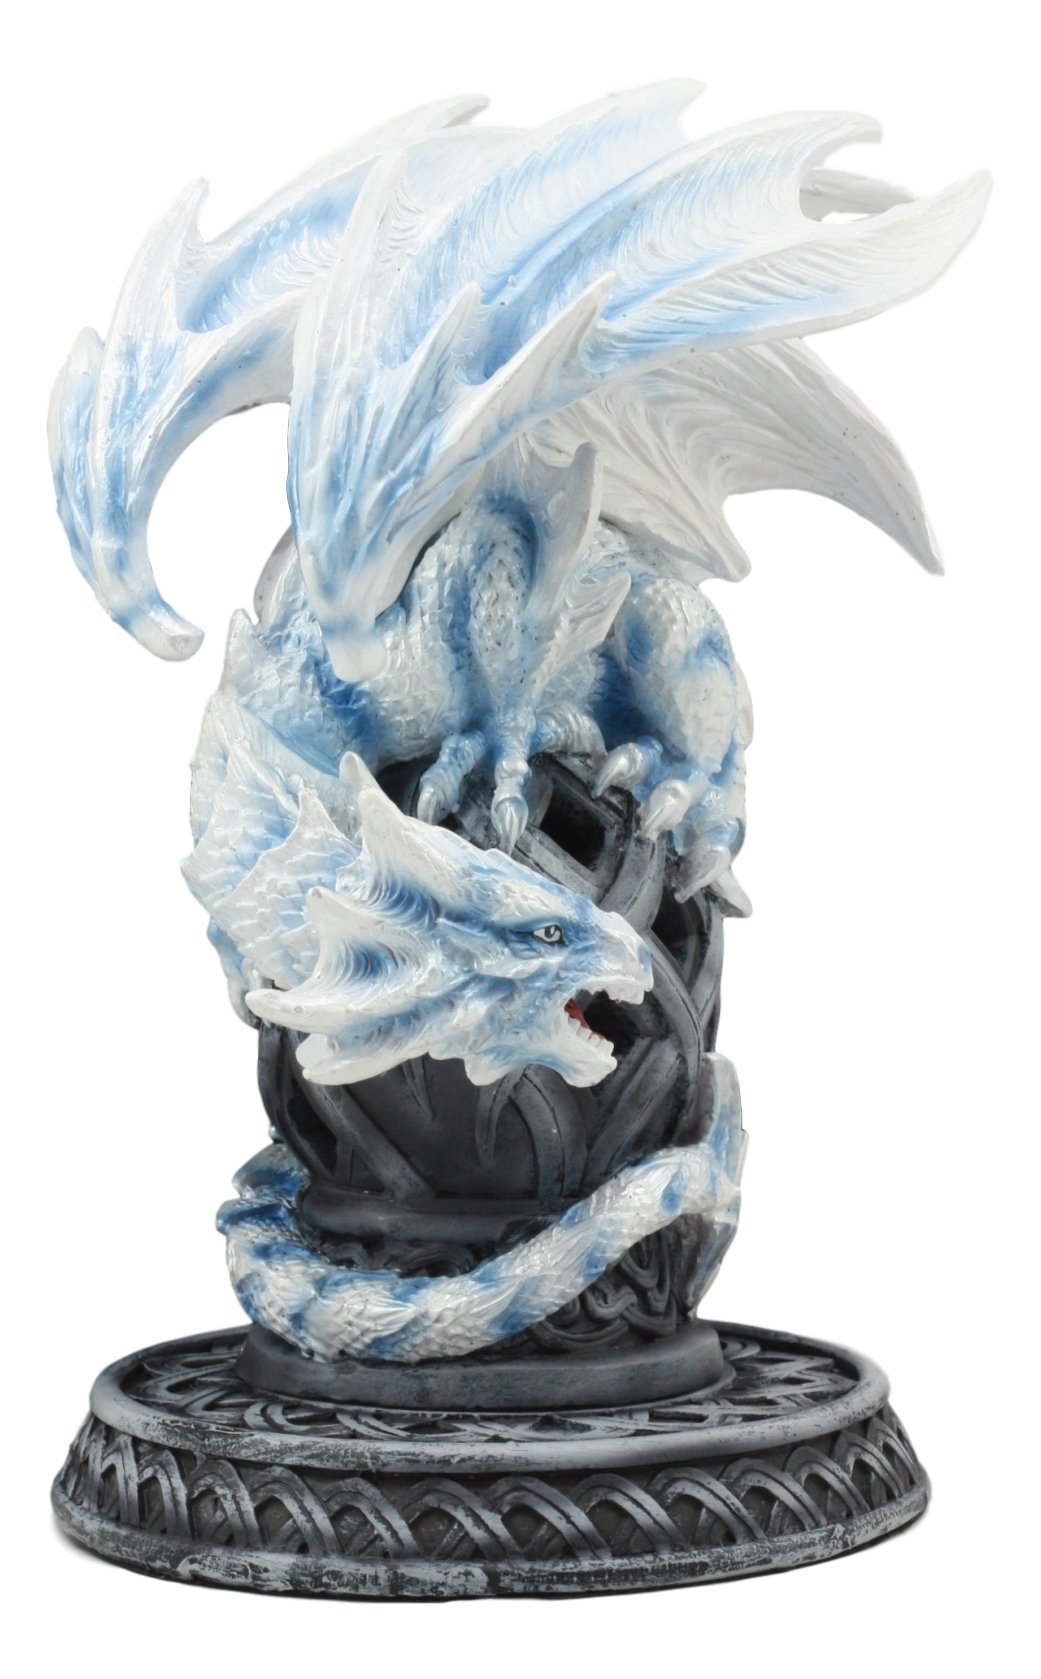 Ebros Guardian of Celtic Tomb White Icycle Dragon Backflow Cone Incense Holder Statue 8.5''Tall Fantasy Icelandic Dragon LED Tea Light Candle Holder Figurine by Ebros Gift (Image #5)